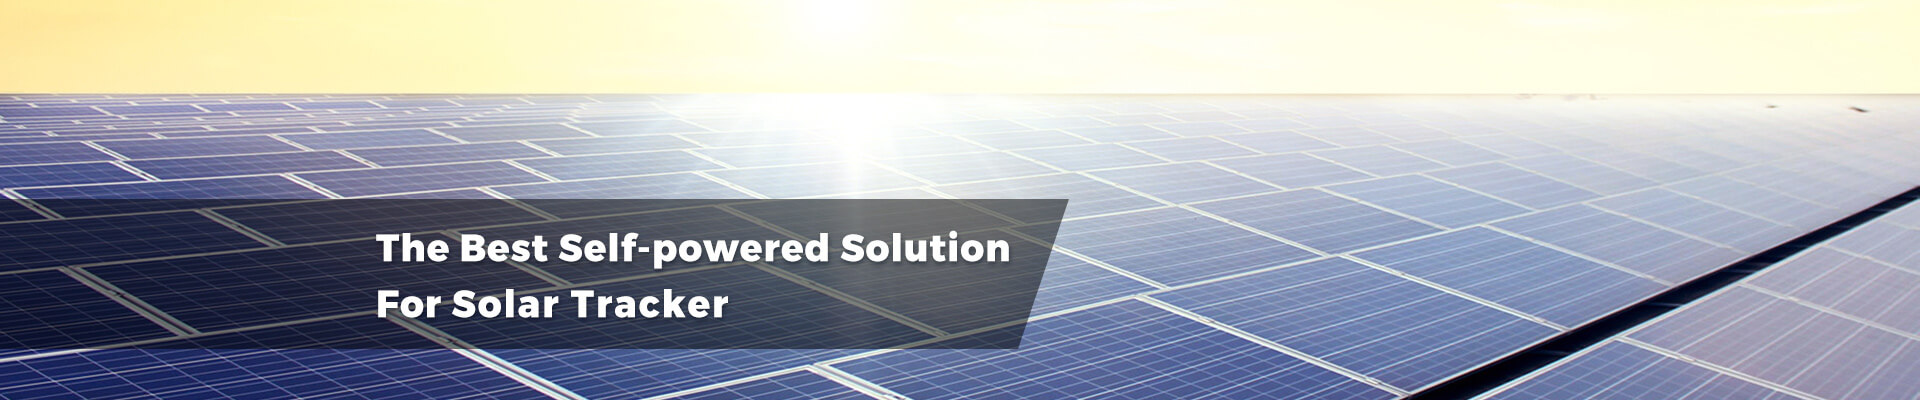 The Best Self-powered Solution For Solar Tracker/Tracking System